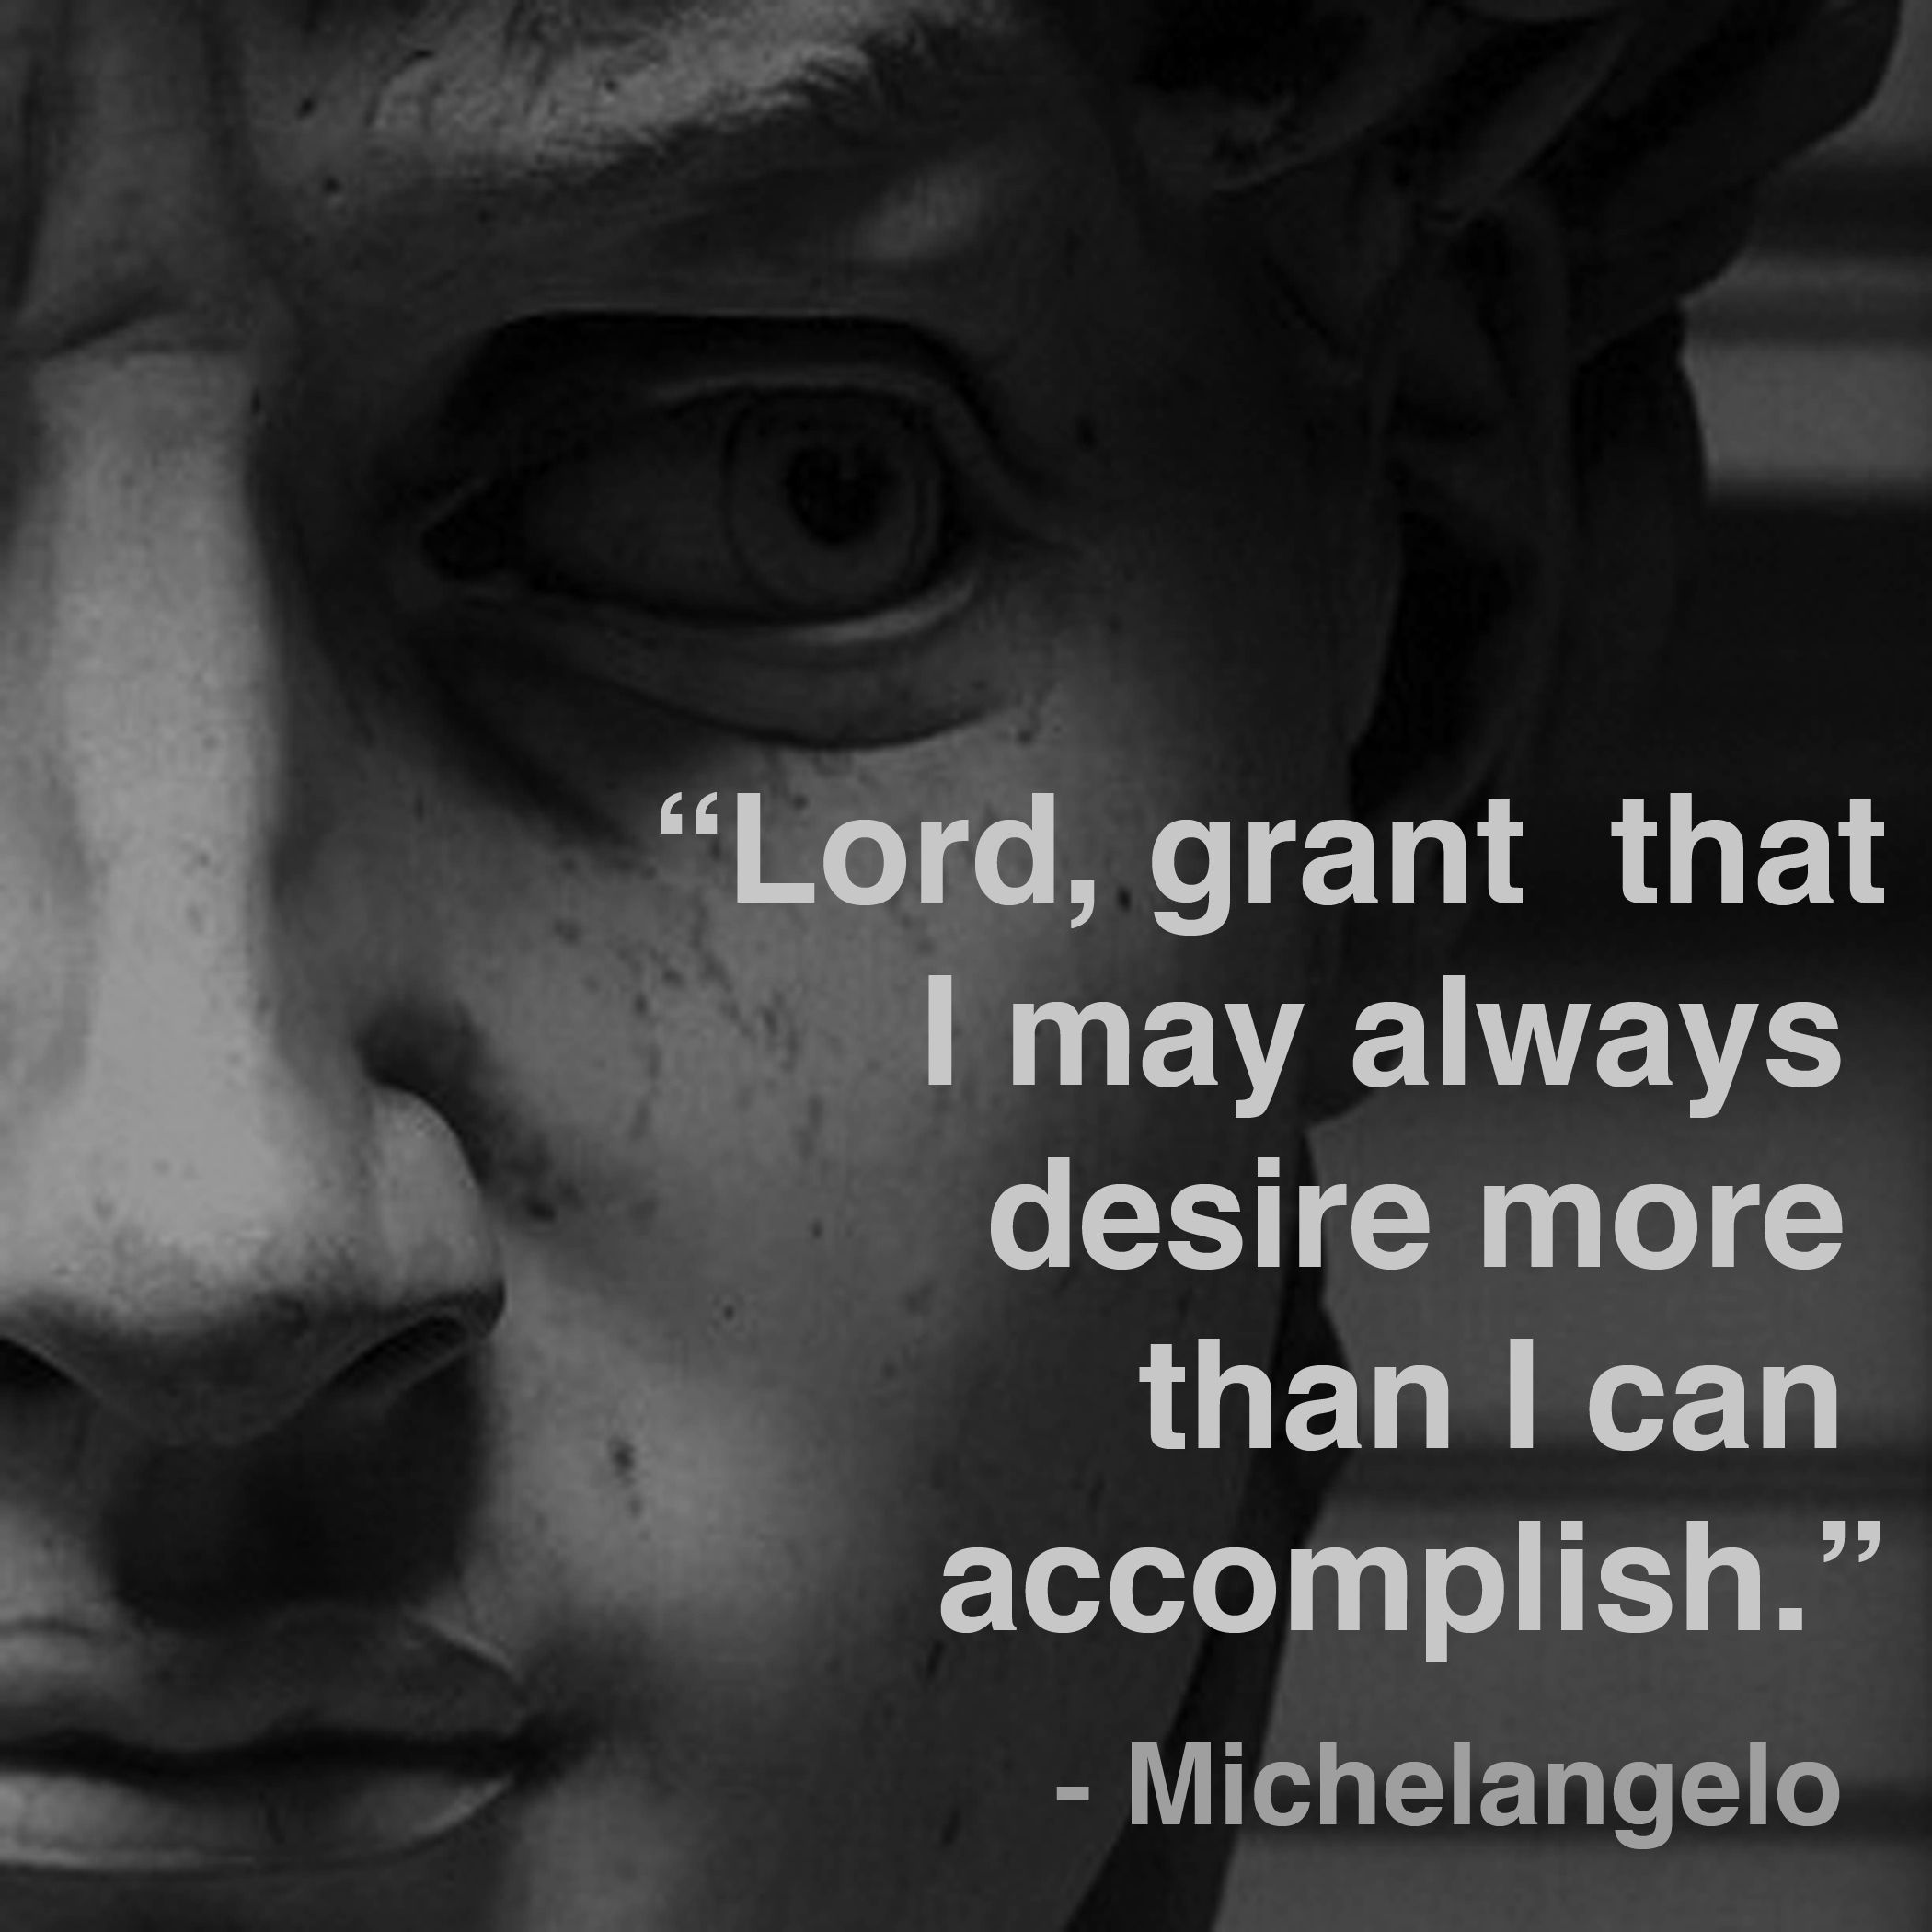 Michelangelo Quotes Captivating Lord Grant That I May Always Desire More Than I Can Accomplish